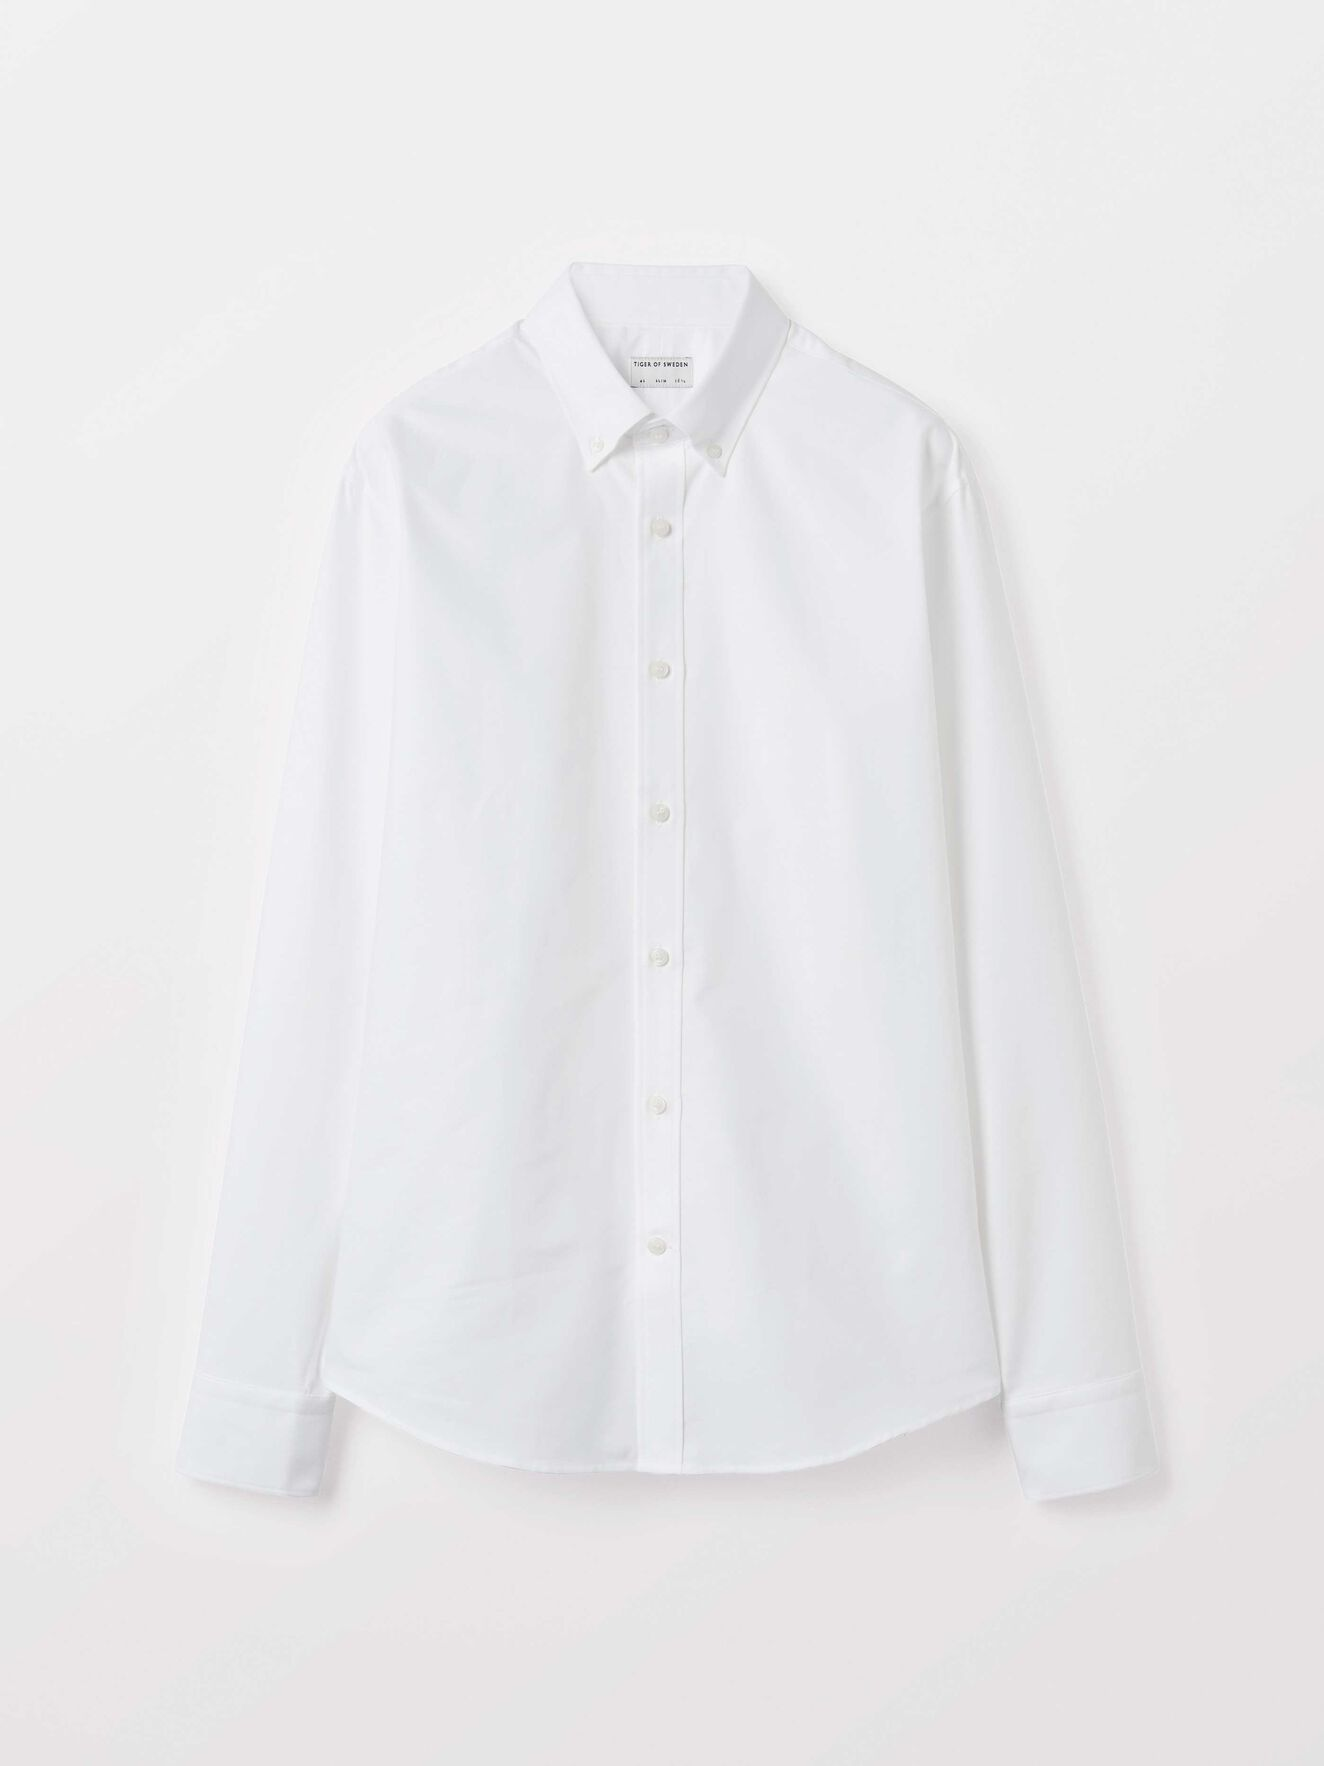 Fenald Shirt in White from Tiger of Sweden